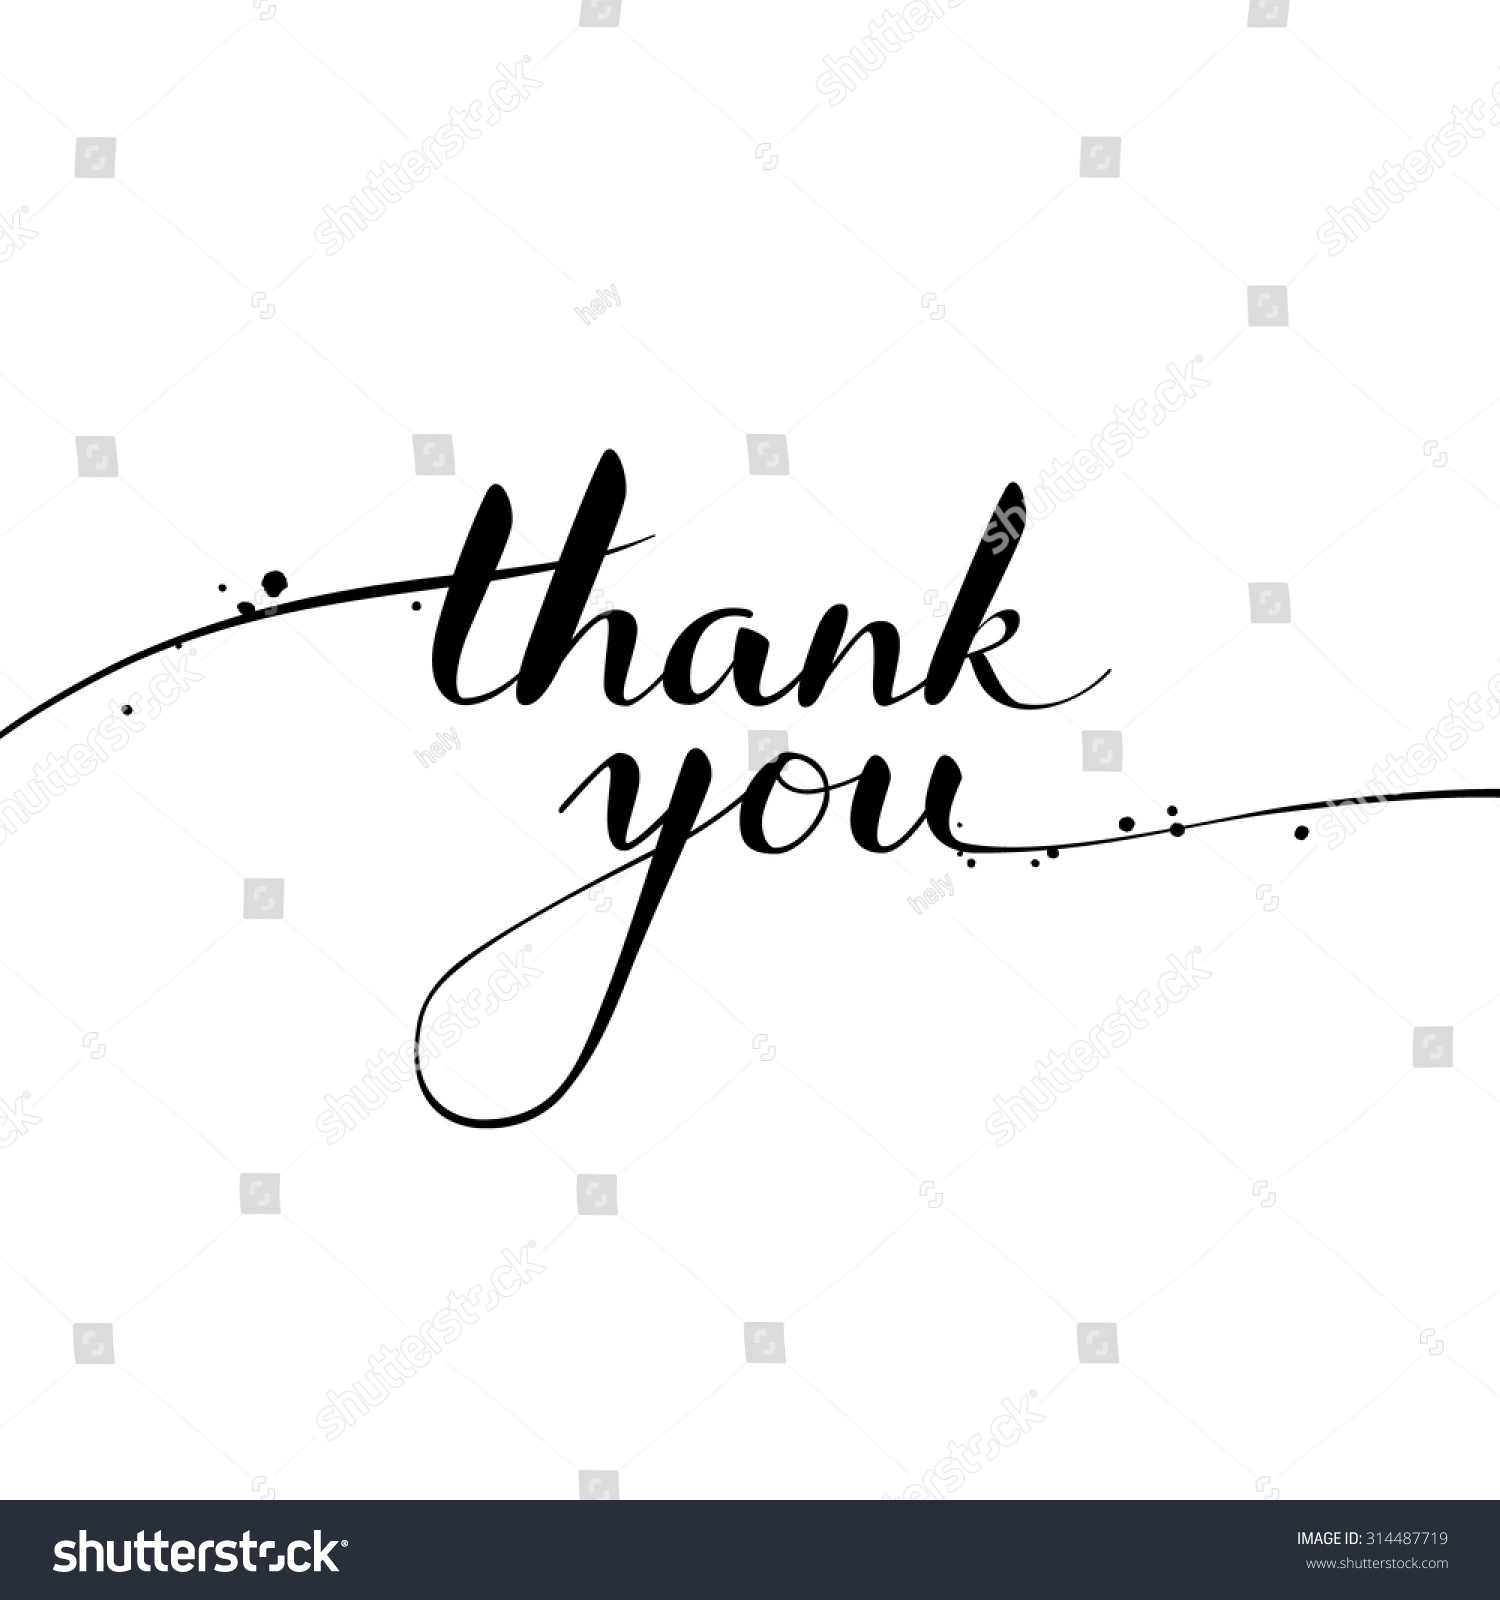 Thank you calligraphy brush painted letters stock vector Thank you in calligraphy writing